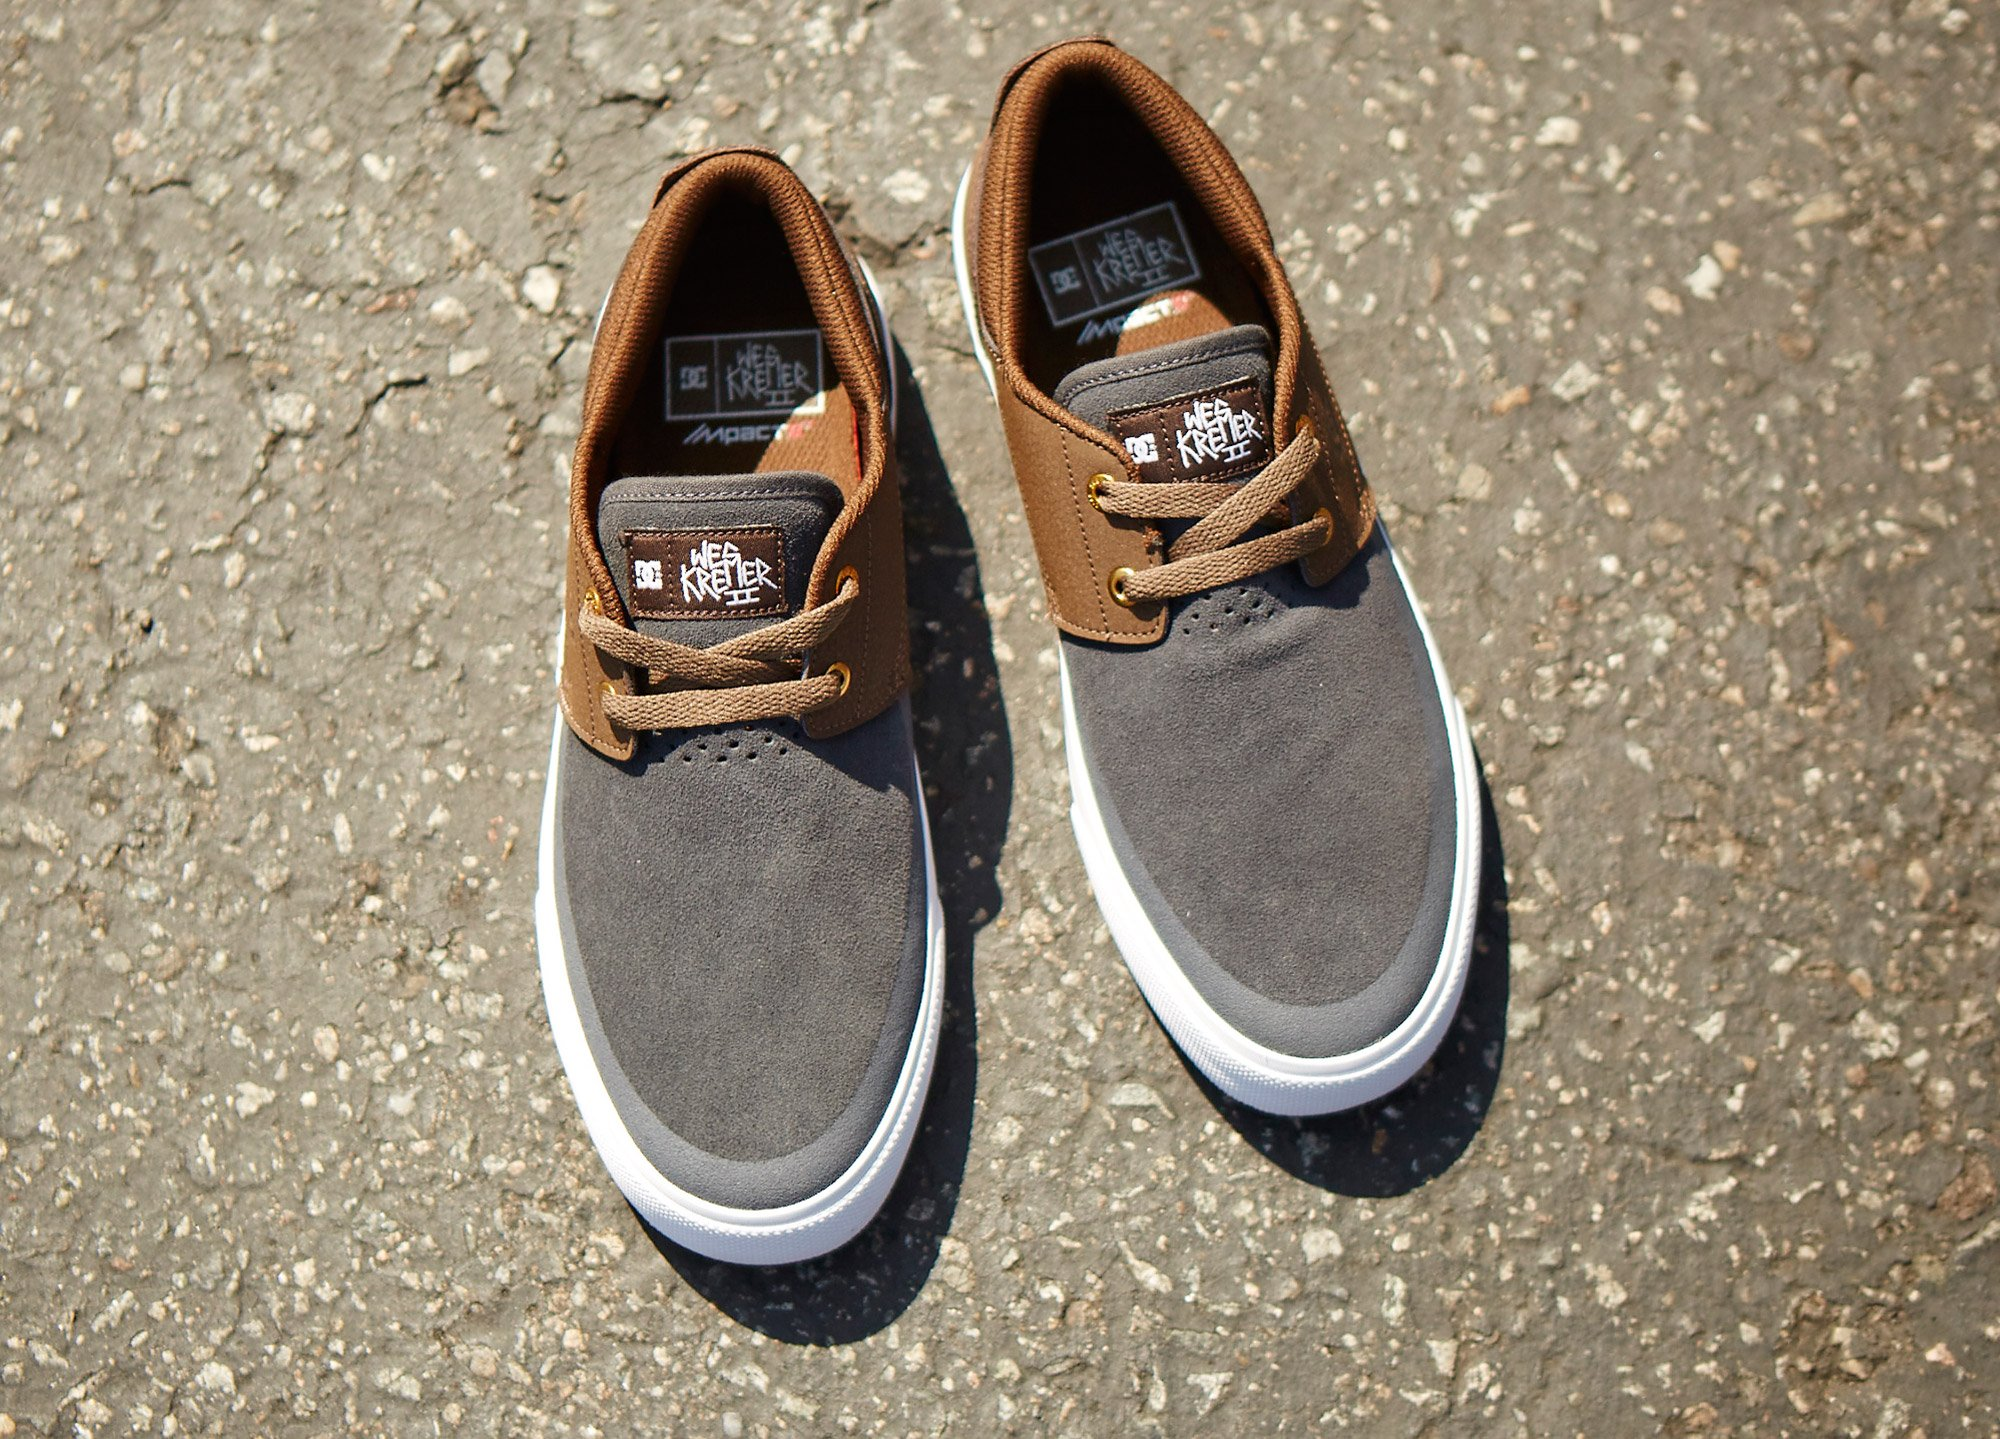 The #WesKremer 2, with a slip-on fit & IMPACT-S sockliner is a crowd favorite. Get yours at: https://t.co/LCAE4FtOhF https://t.co/vjPEiKTuRC